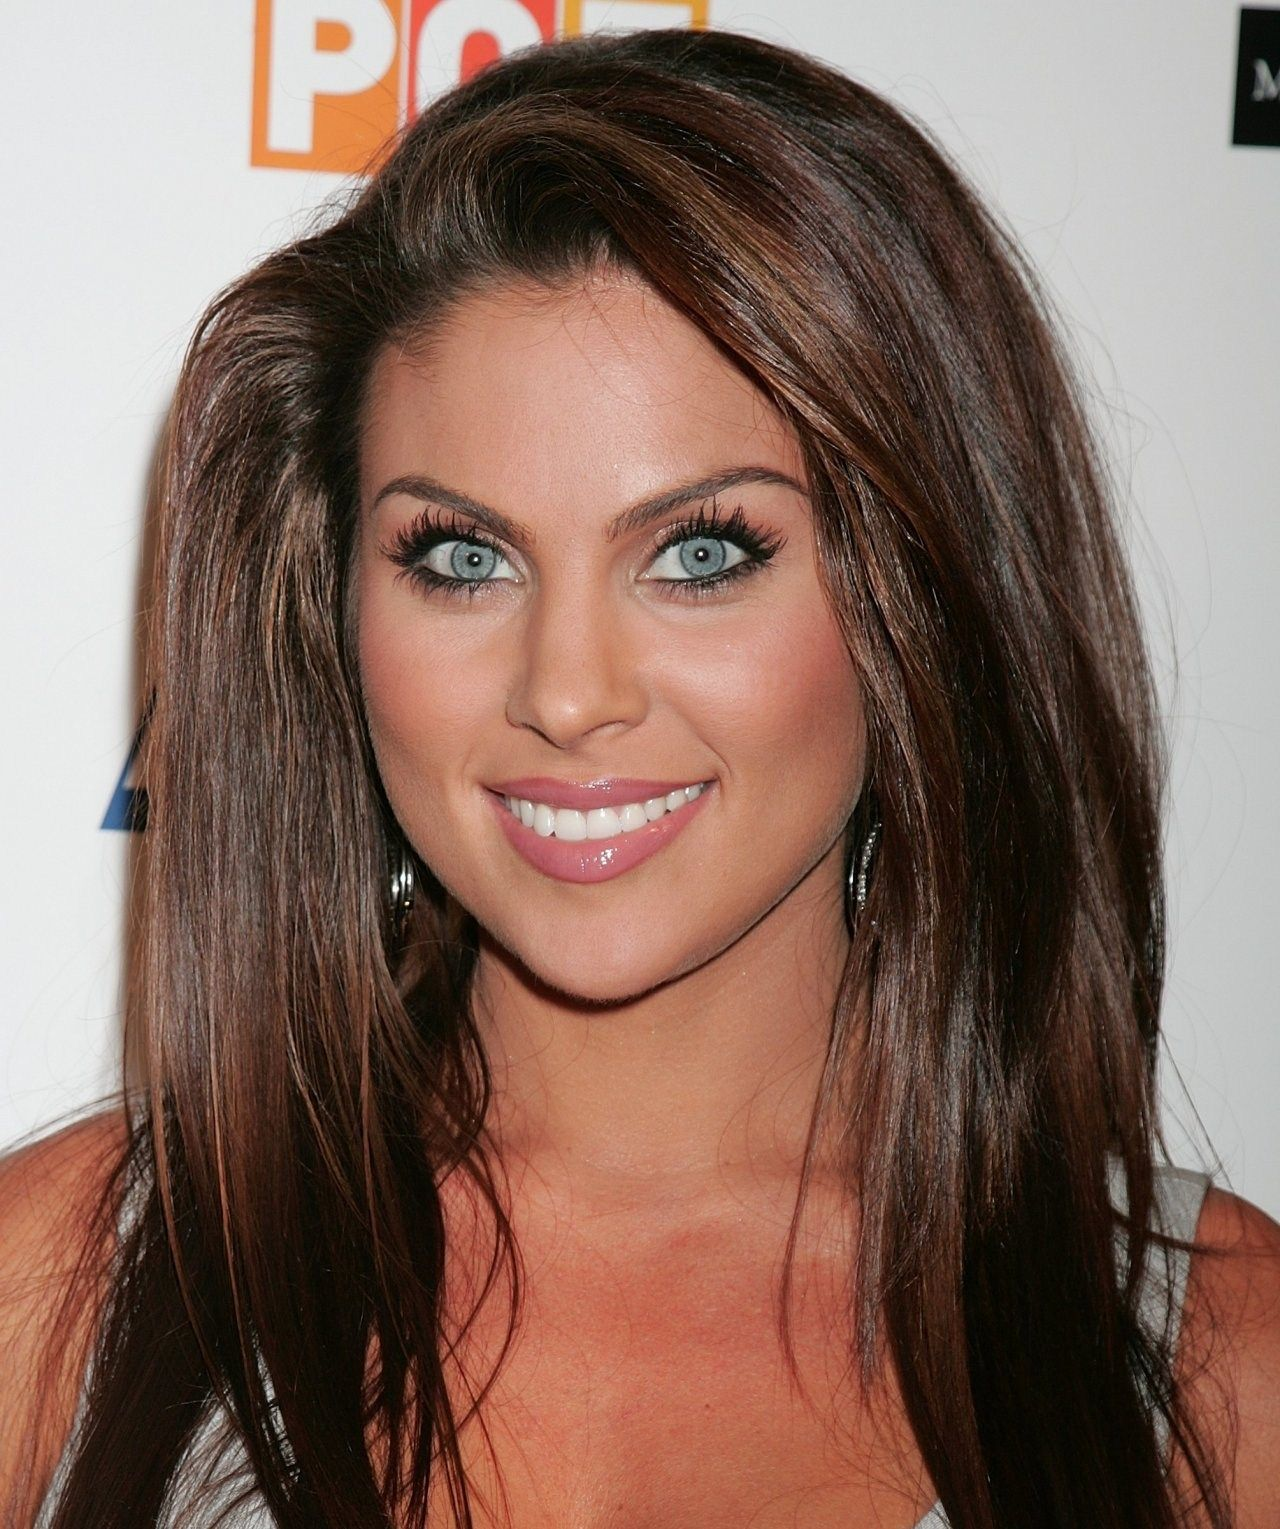 Makeup For Tan Skin Brown Hair And Blue Eyes Brunette Green